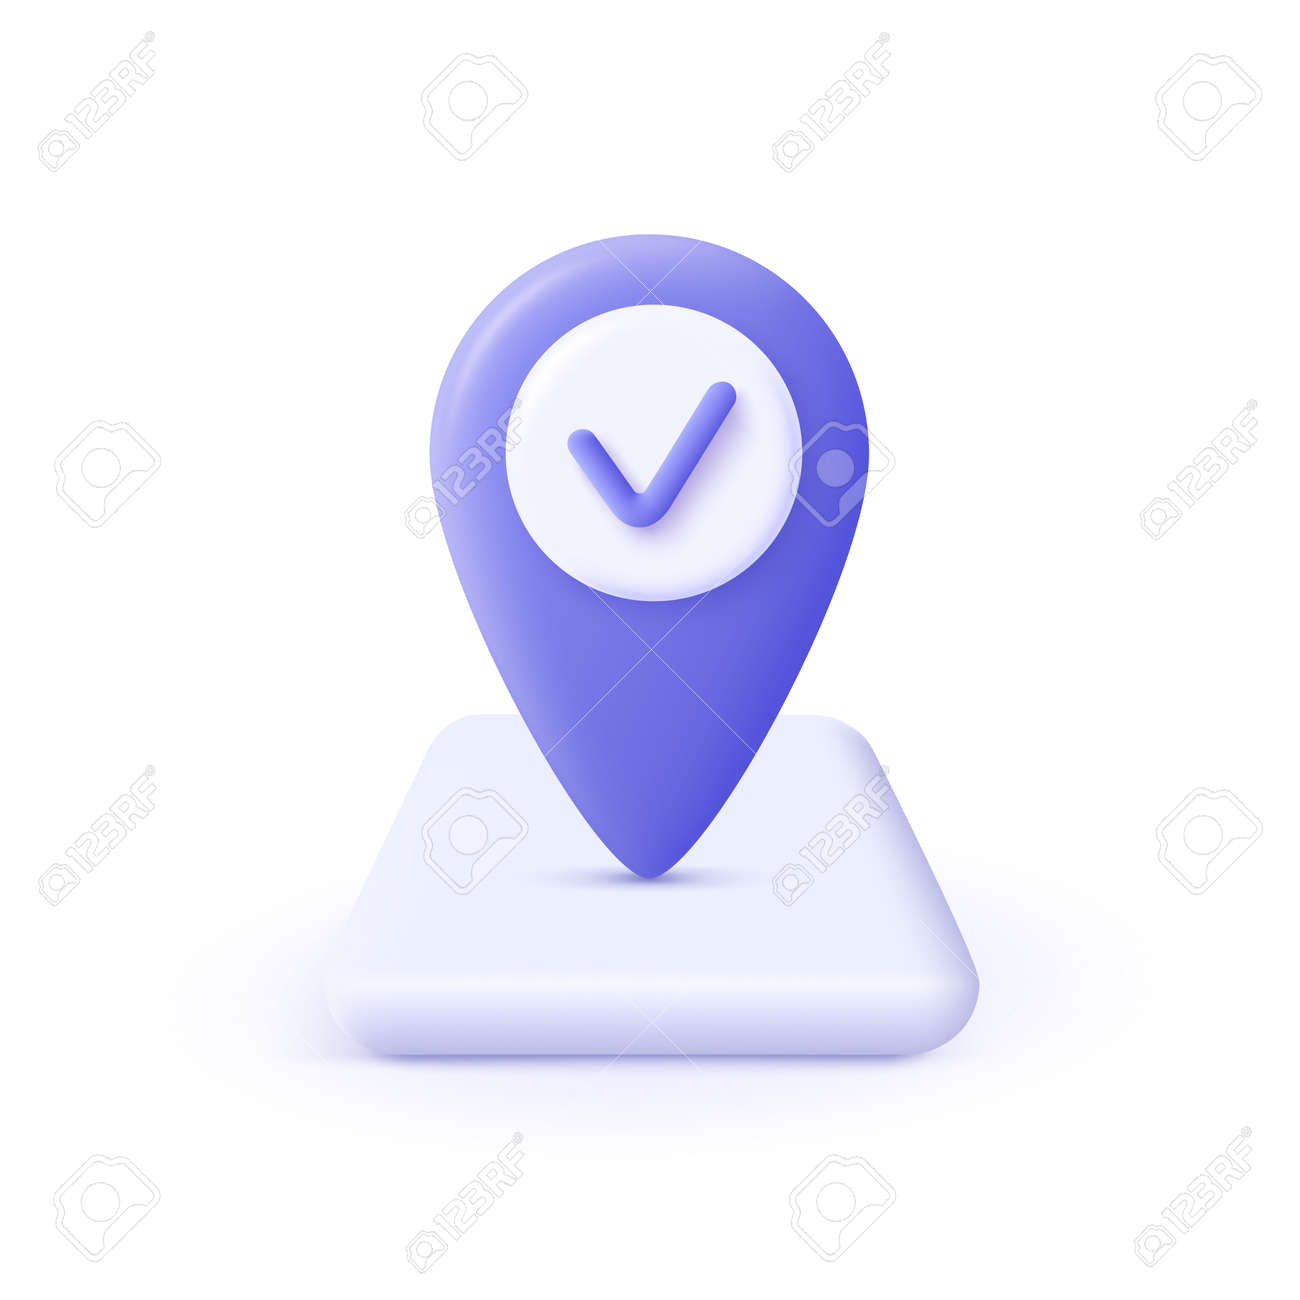 Checkmark icon. Approvement concept. Geolocation map mark, point location. 3d realistic vector illustration. - 171635990